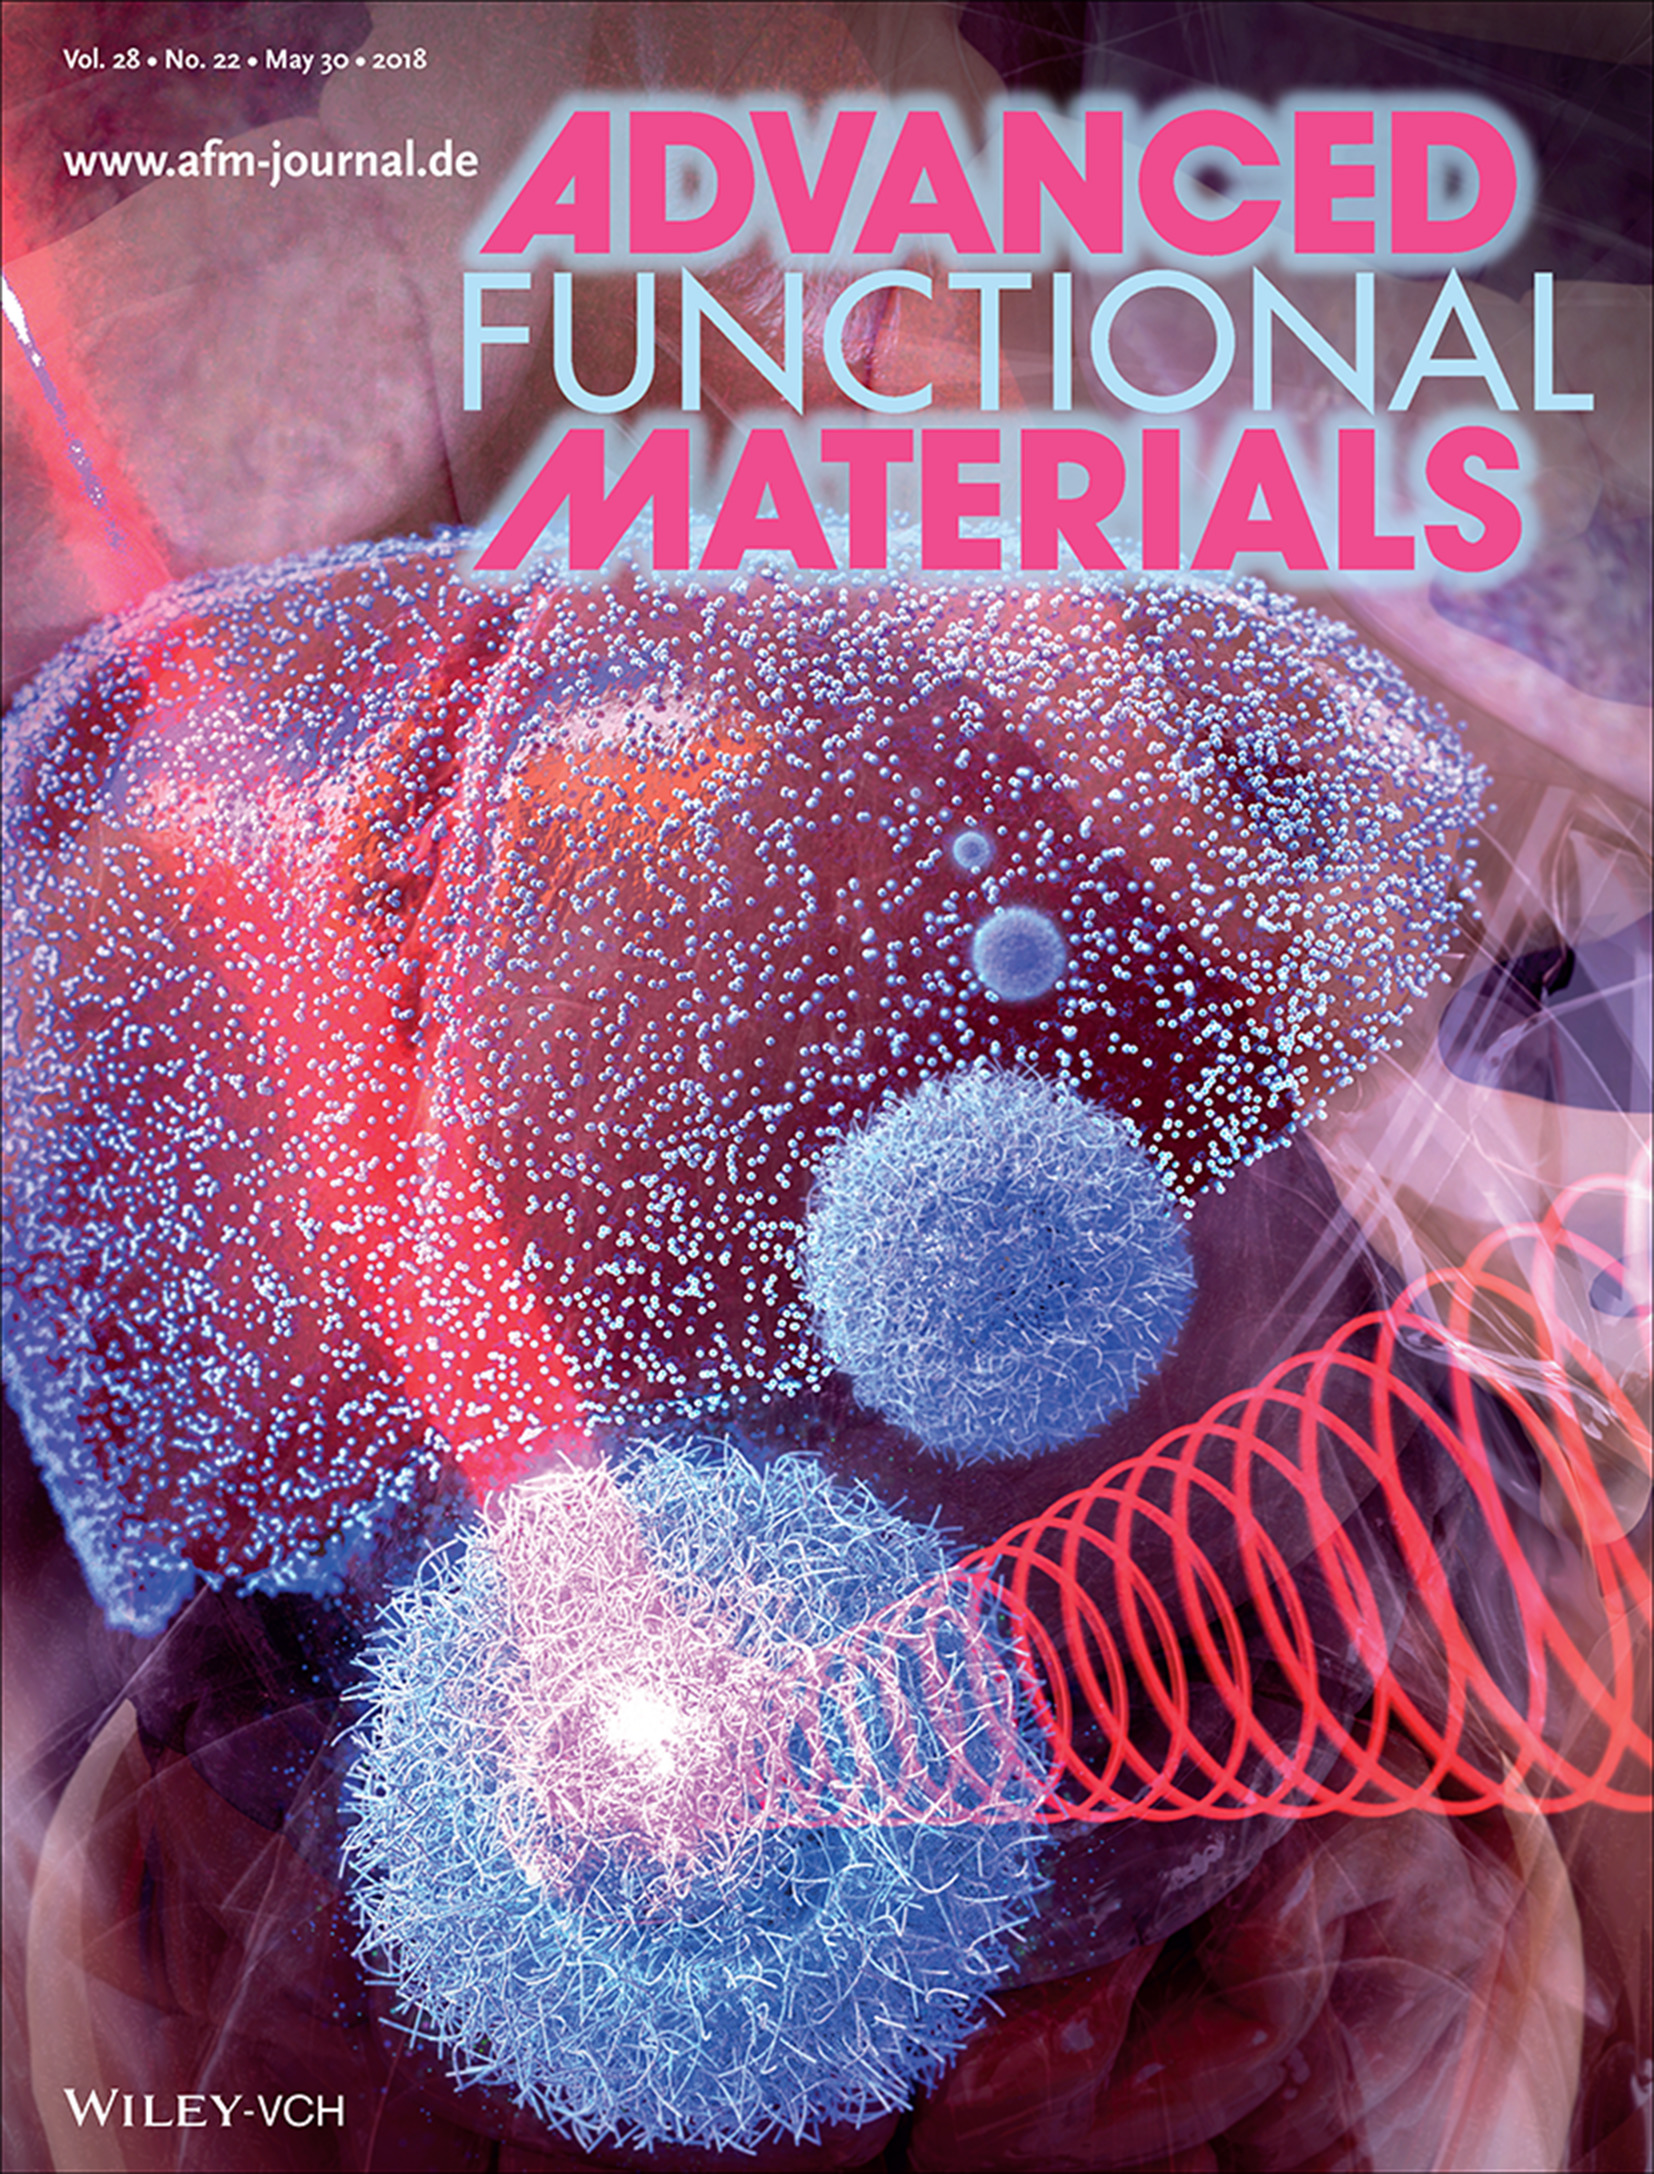 Vol.28,No.22, May302018 www.afm-jouranl.de ADVANCED FUNCTIONAL MATERIALS WILEY-VCH